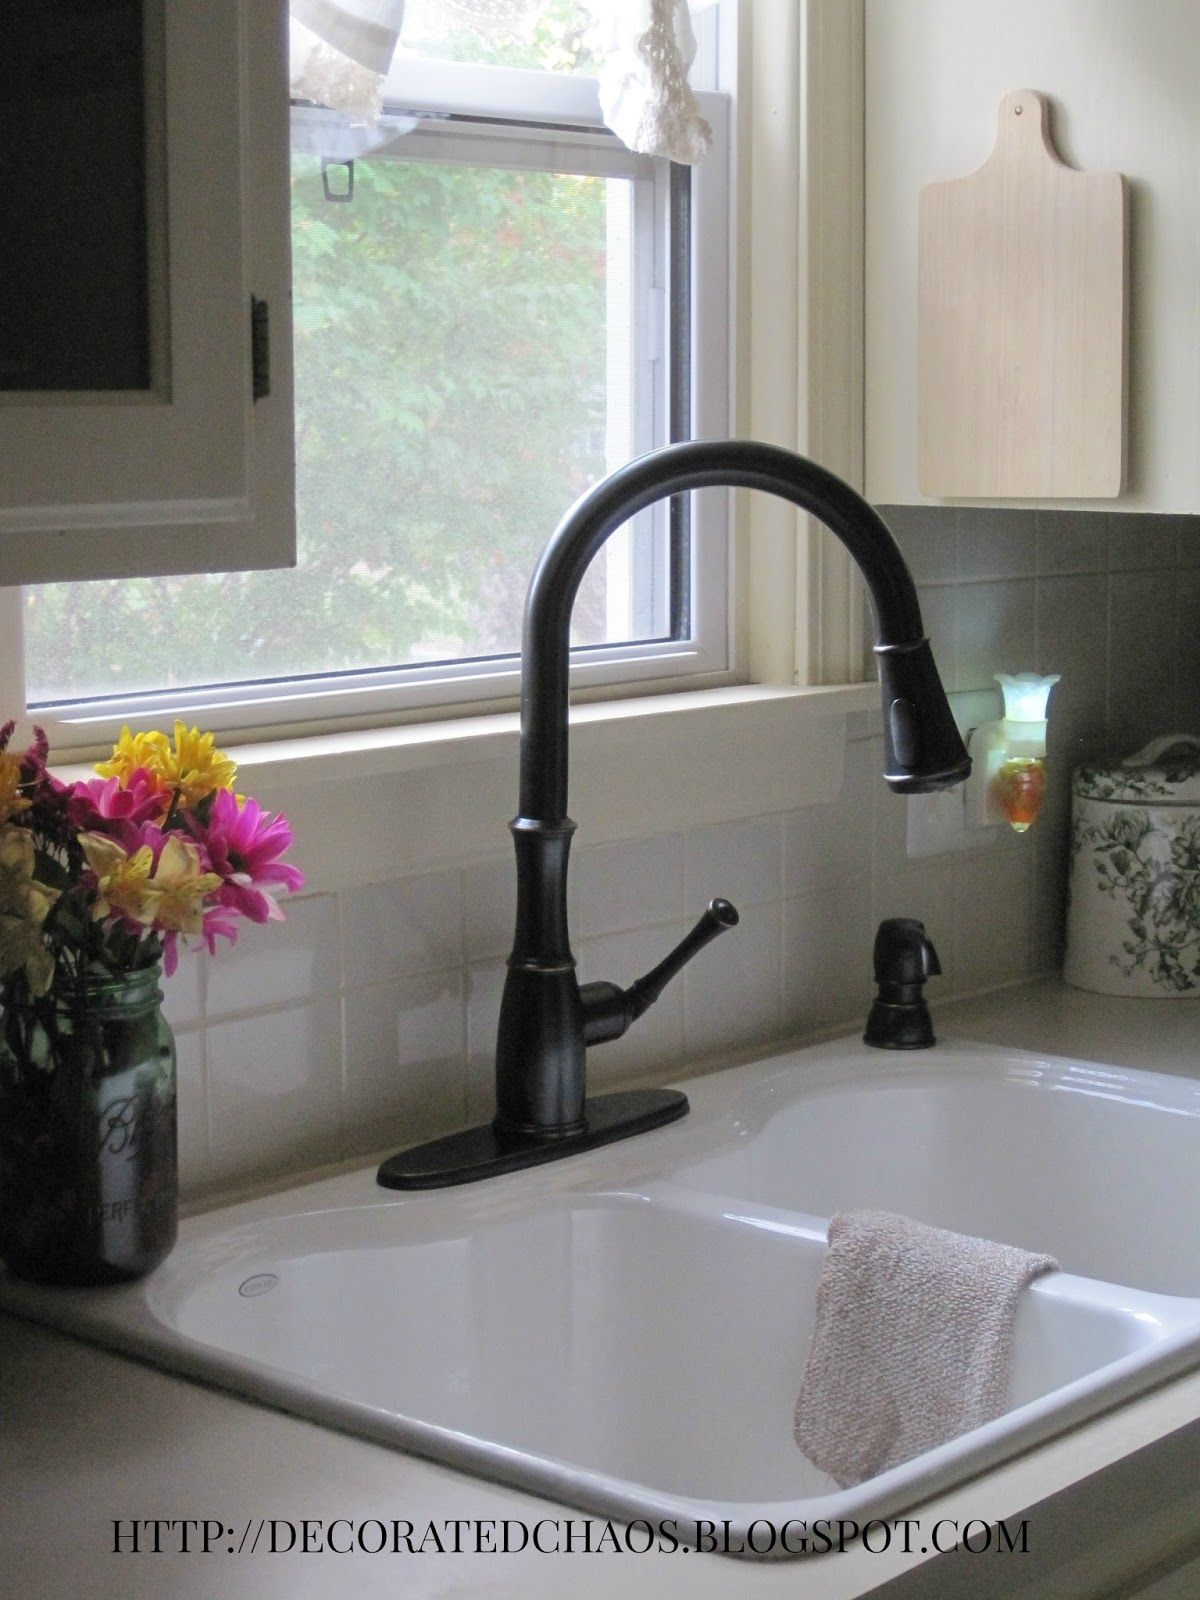 Kitchen Faucet   Decorated Chaos New Pfister Faucet In Tuscan Bronze And  White Cast Iron Sink.